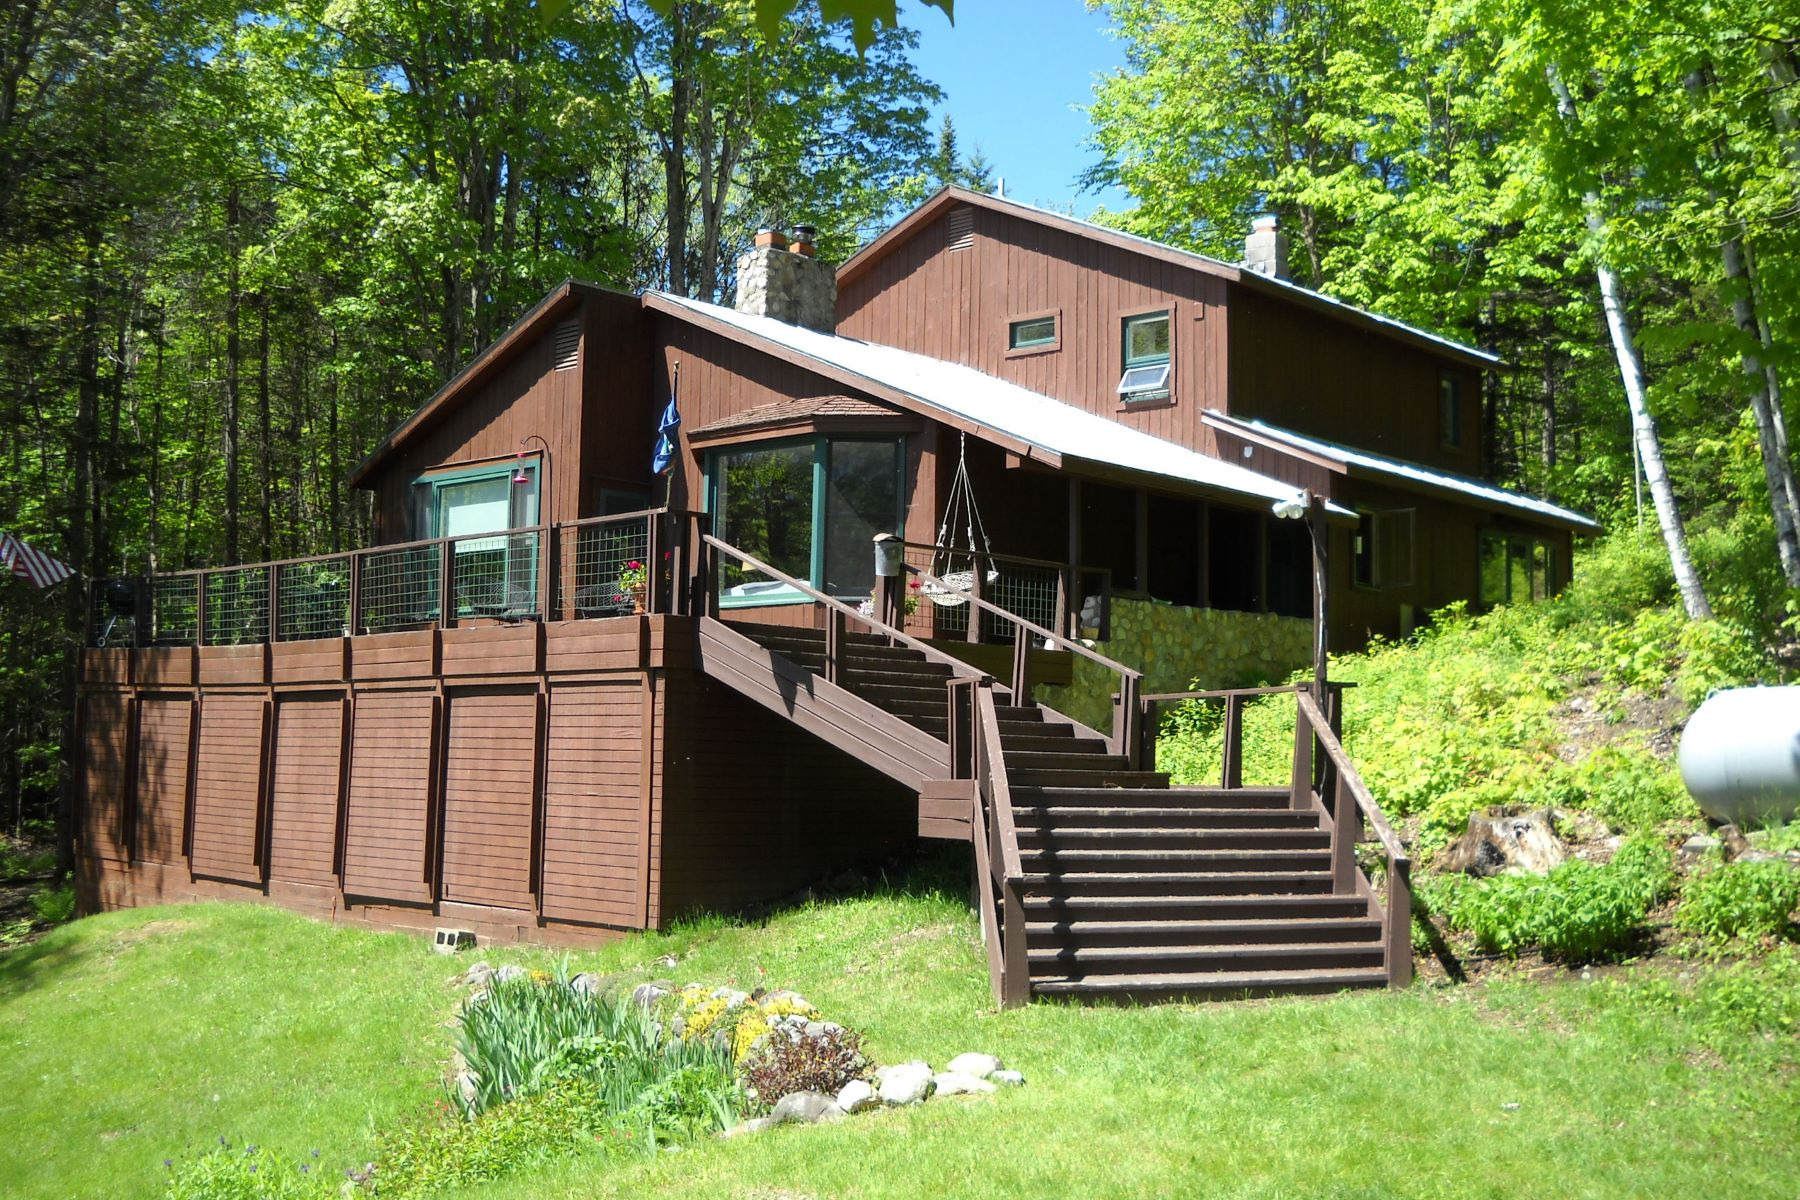 single family homes for Sale at Four Bedroom Contemporary in Topsham 55 Emerson Rd Topsham, Vermont 05076 United States